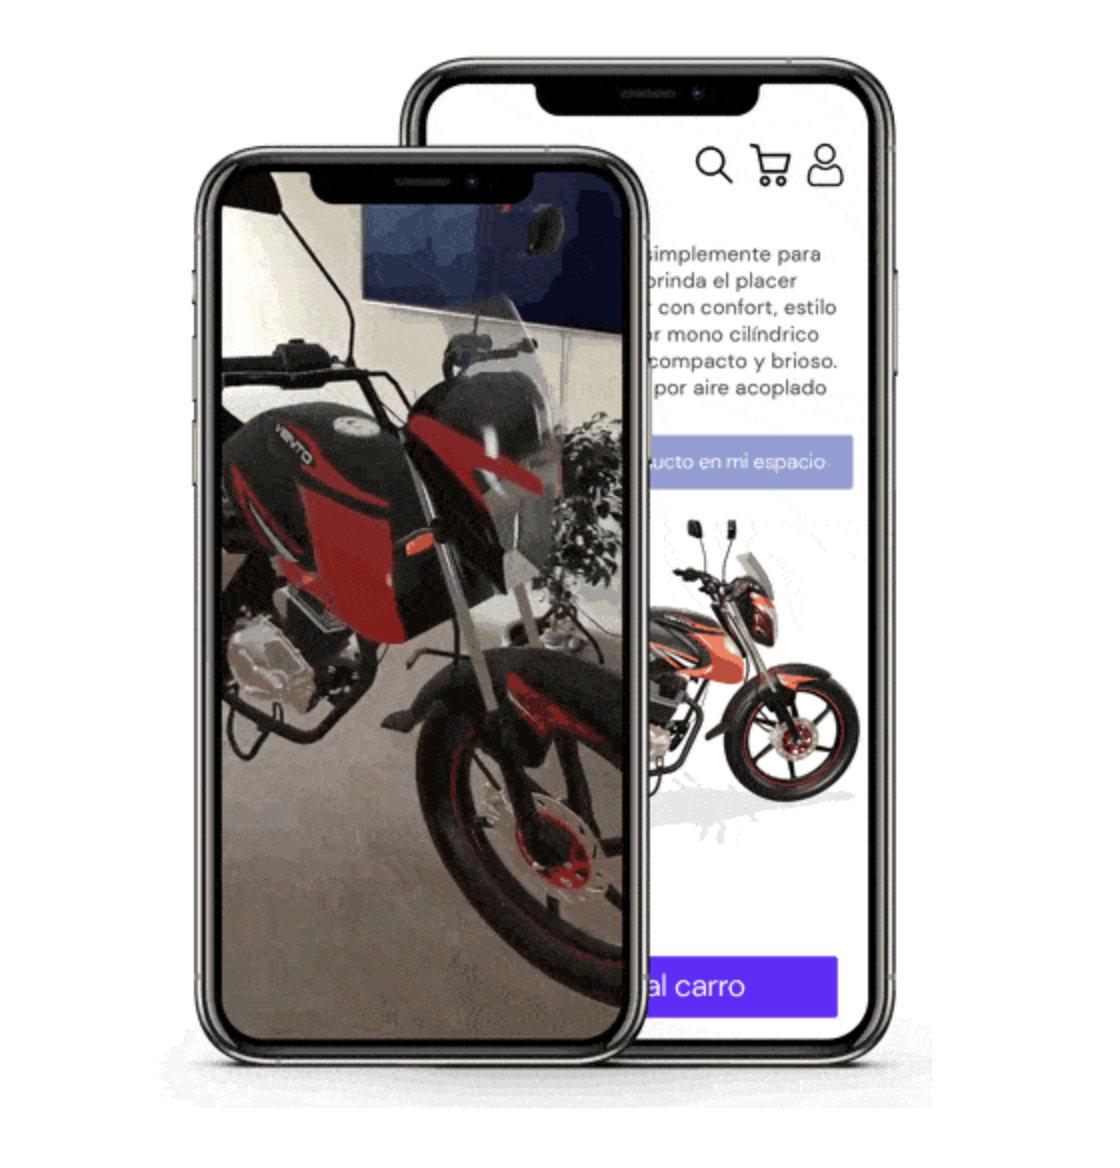 3D + AR product visualization